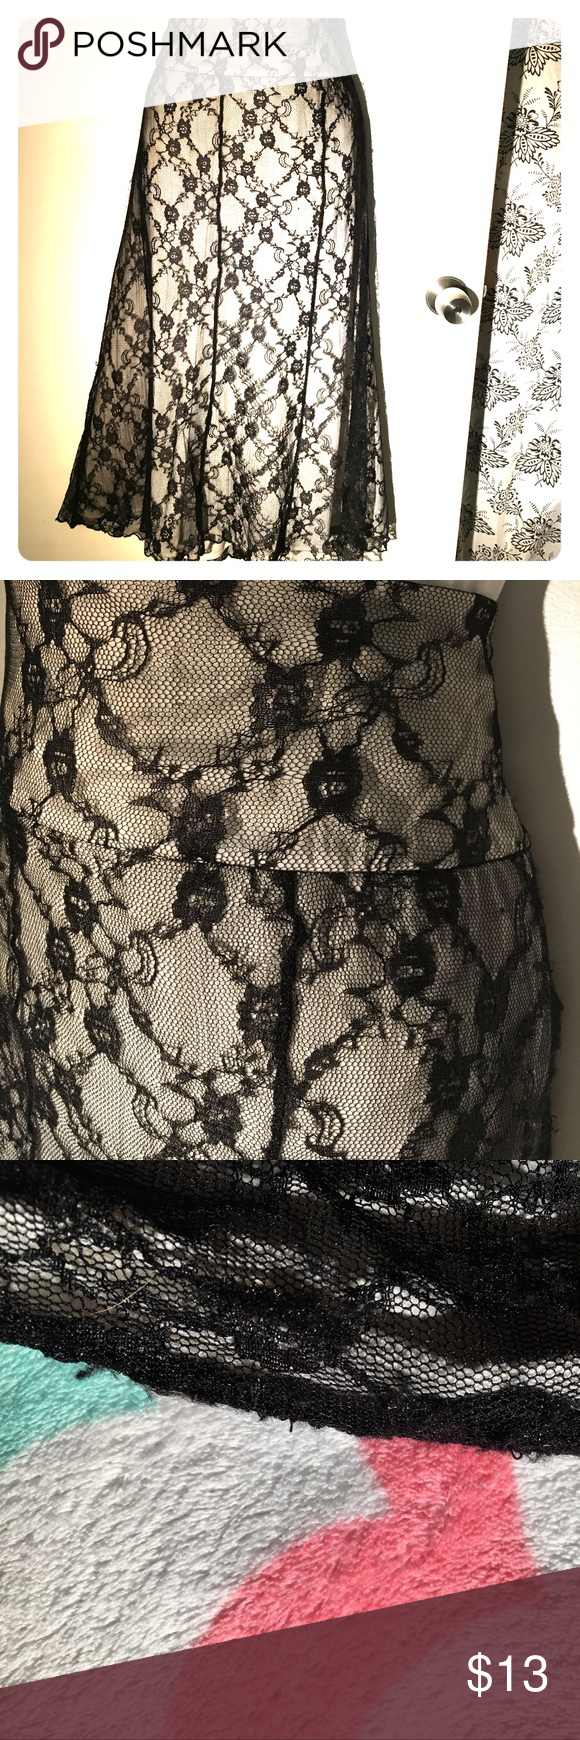 Cream skirt w black lace overlay. Zipper Cream skirt w black lace overlay. Zipper on the side. There is a small bit of wear on the area where the zipper is. But skirt is in good condition otherwise Worthington Skirts A-Line or Full